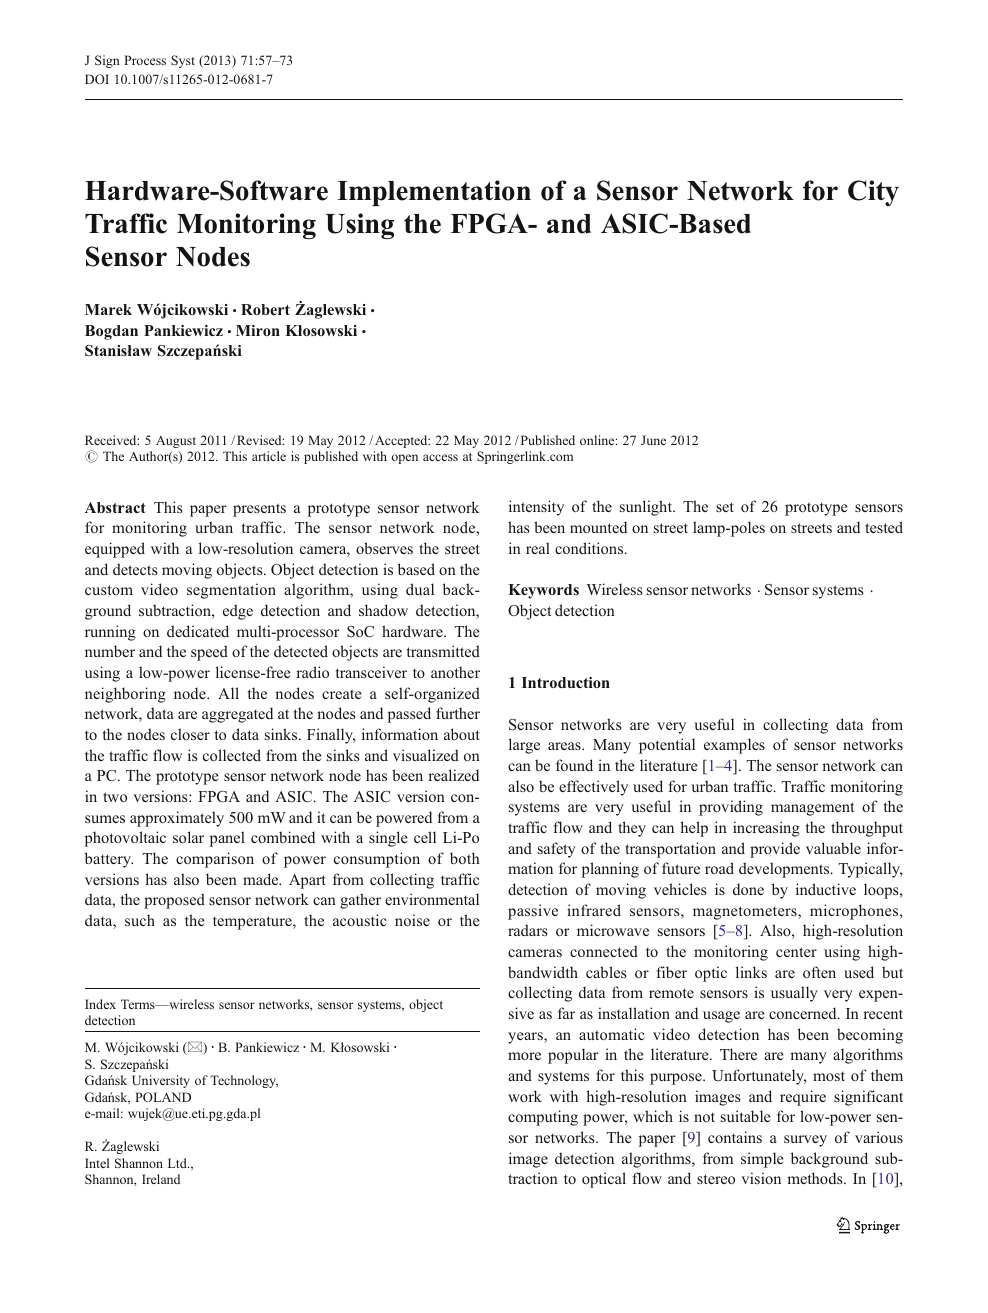 Hardware-Software Implementation of a Sensor Network for City